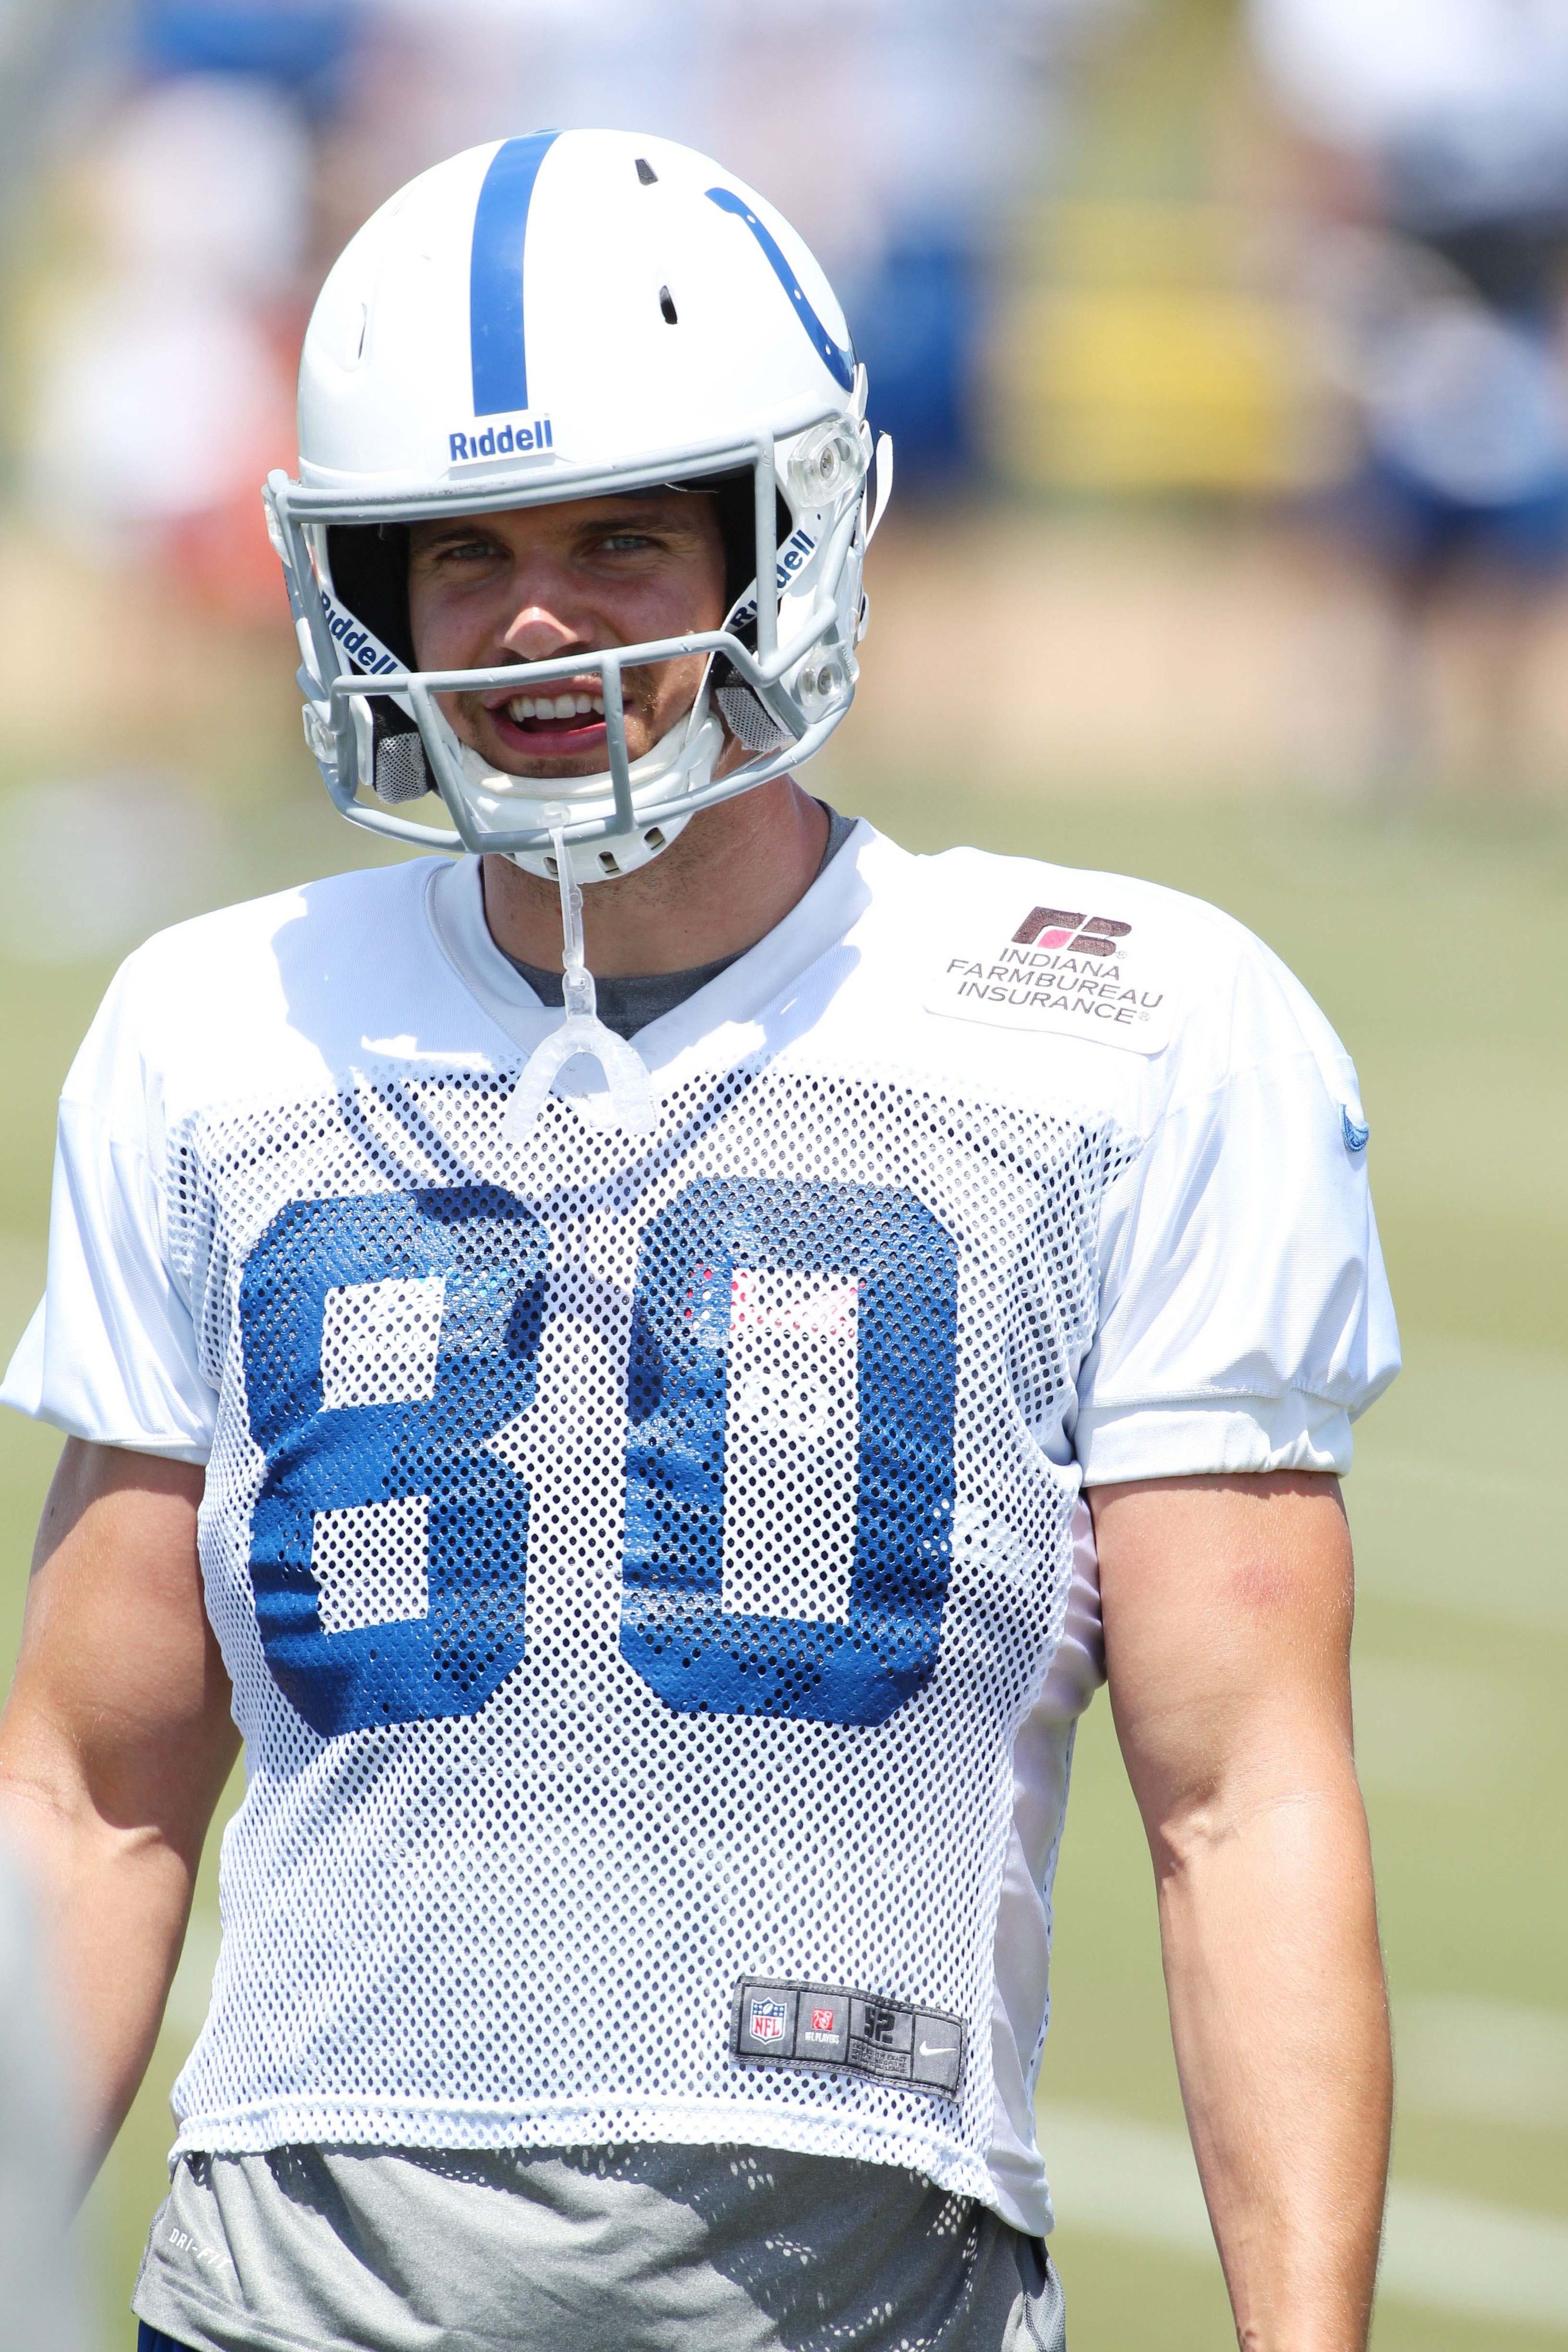 Coby Fleener injury: Colts TE has concussion, misses practice